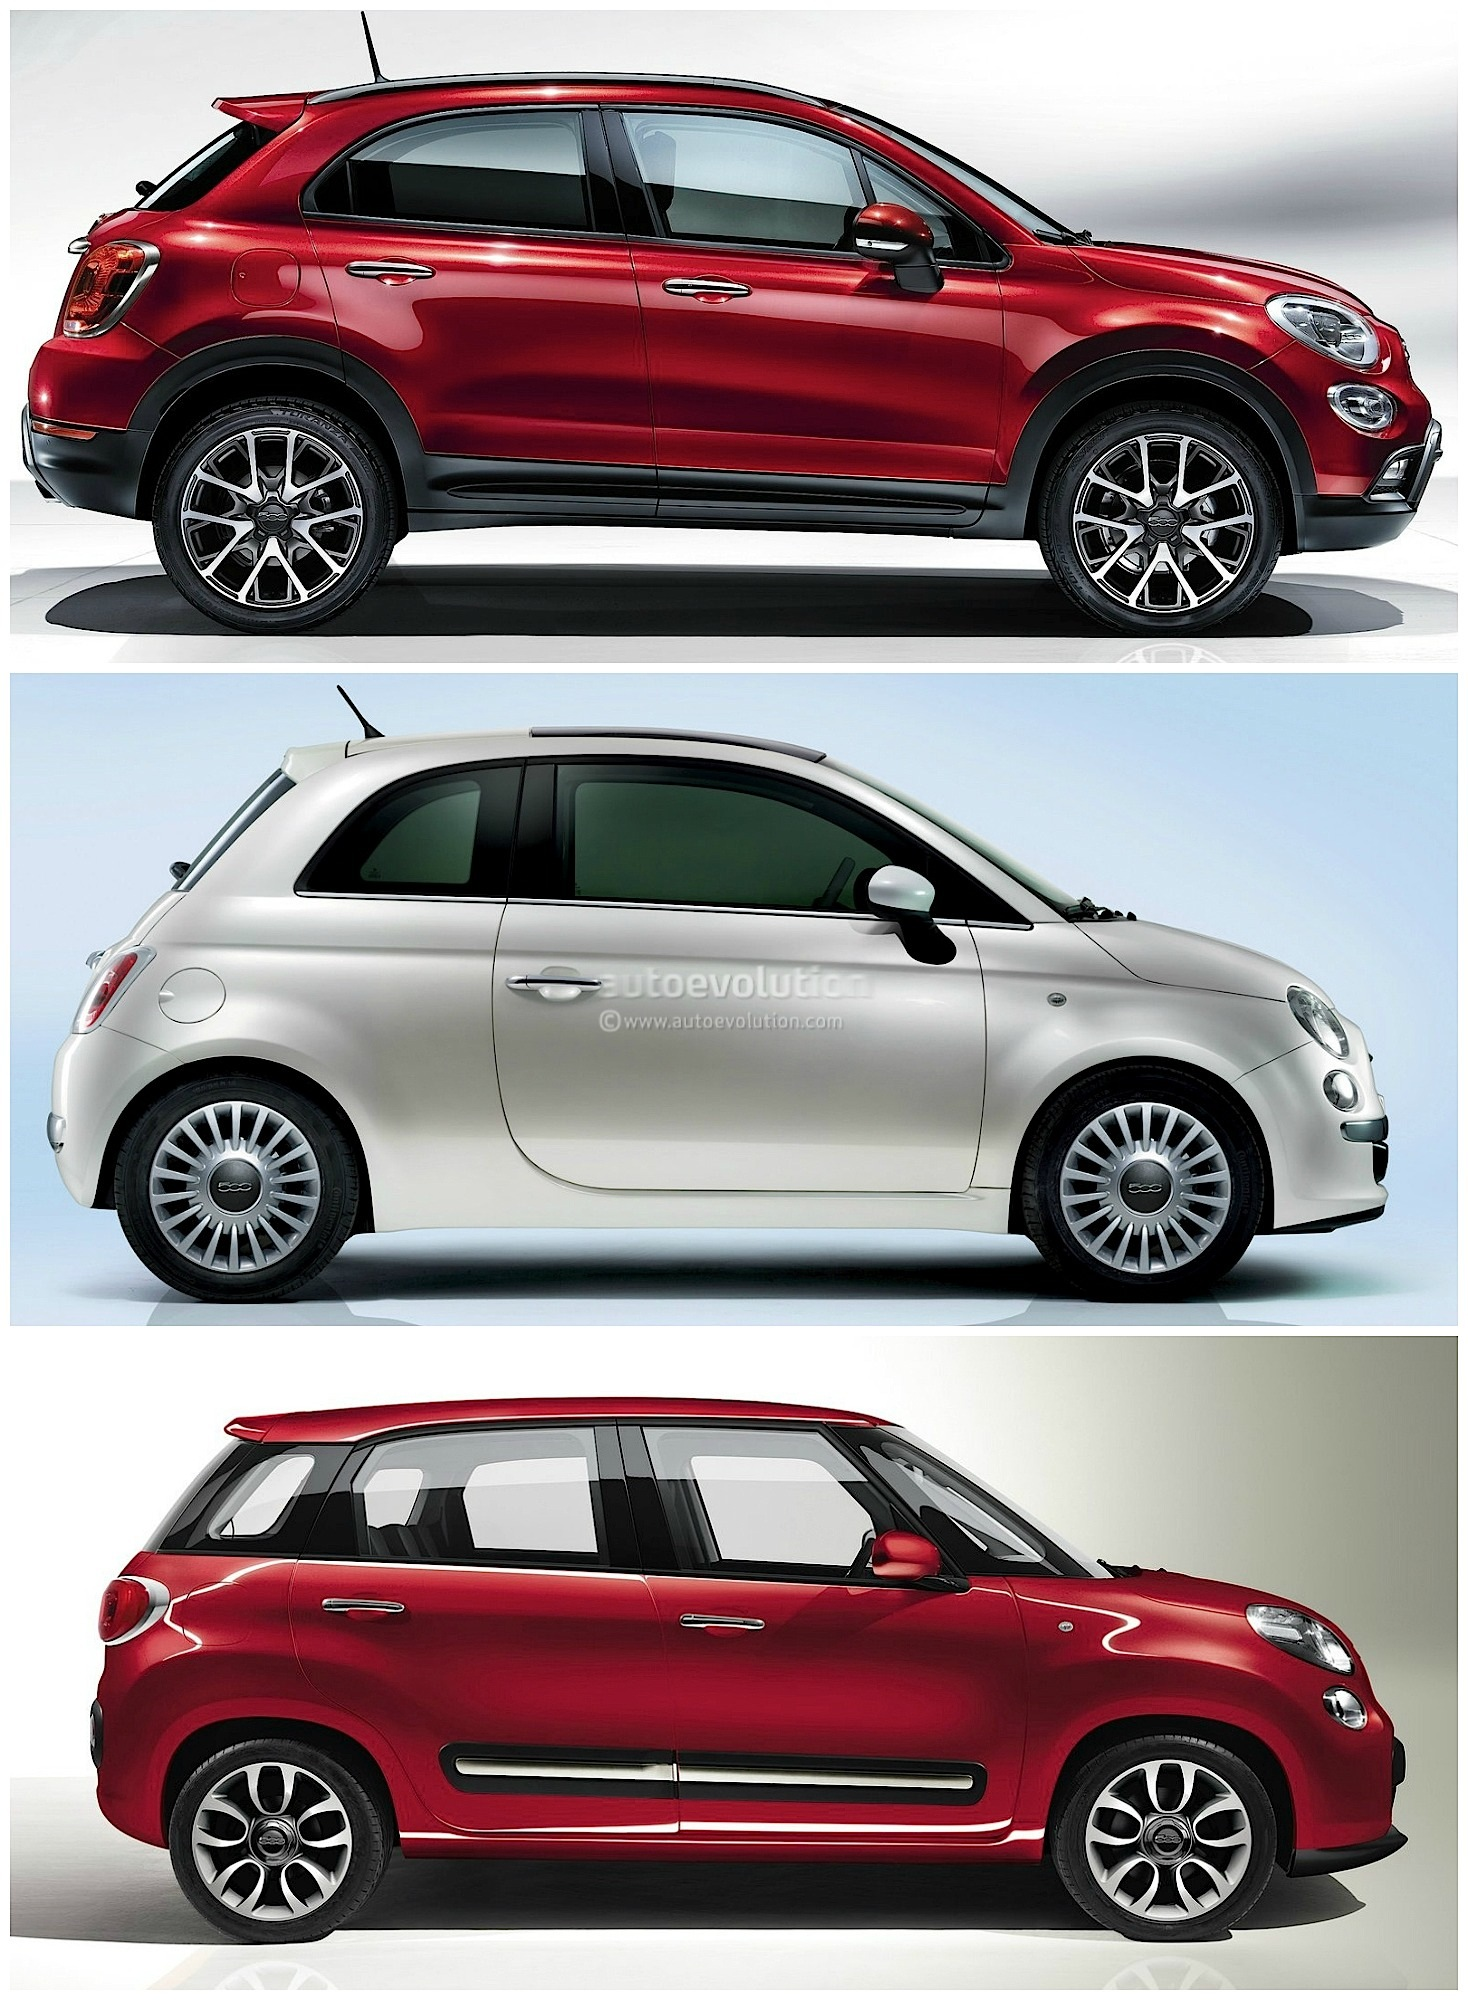 Fiat 500x Vs 500l Vs 500 Italian Family Comparison